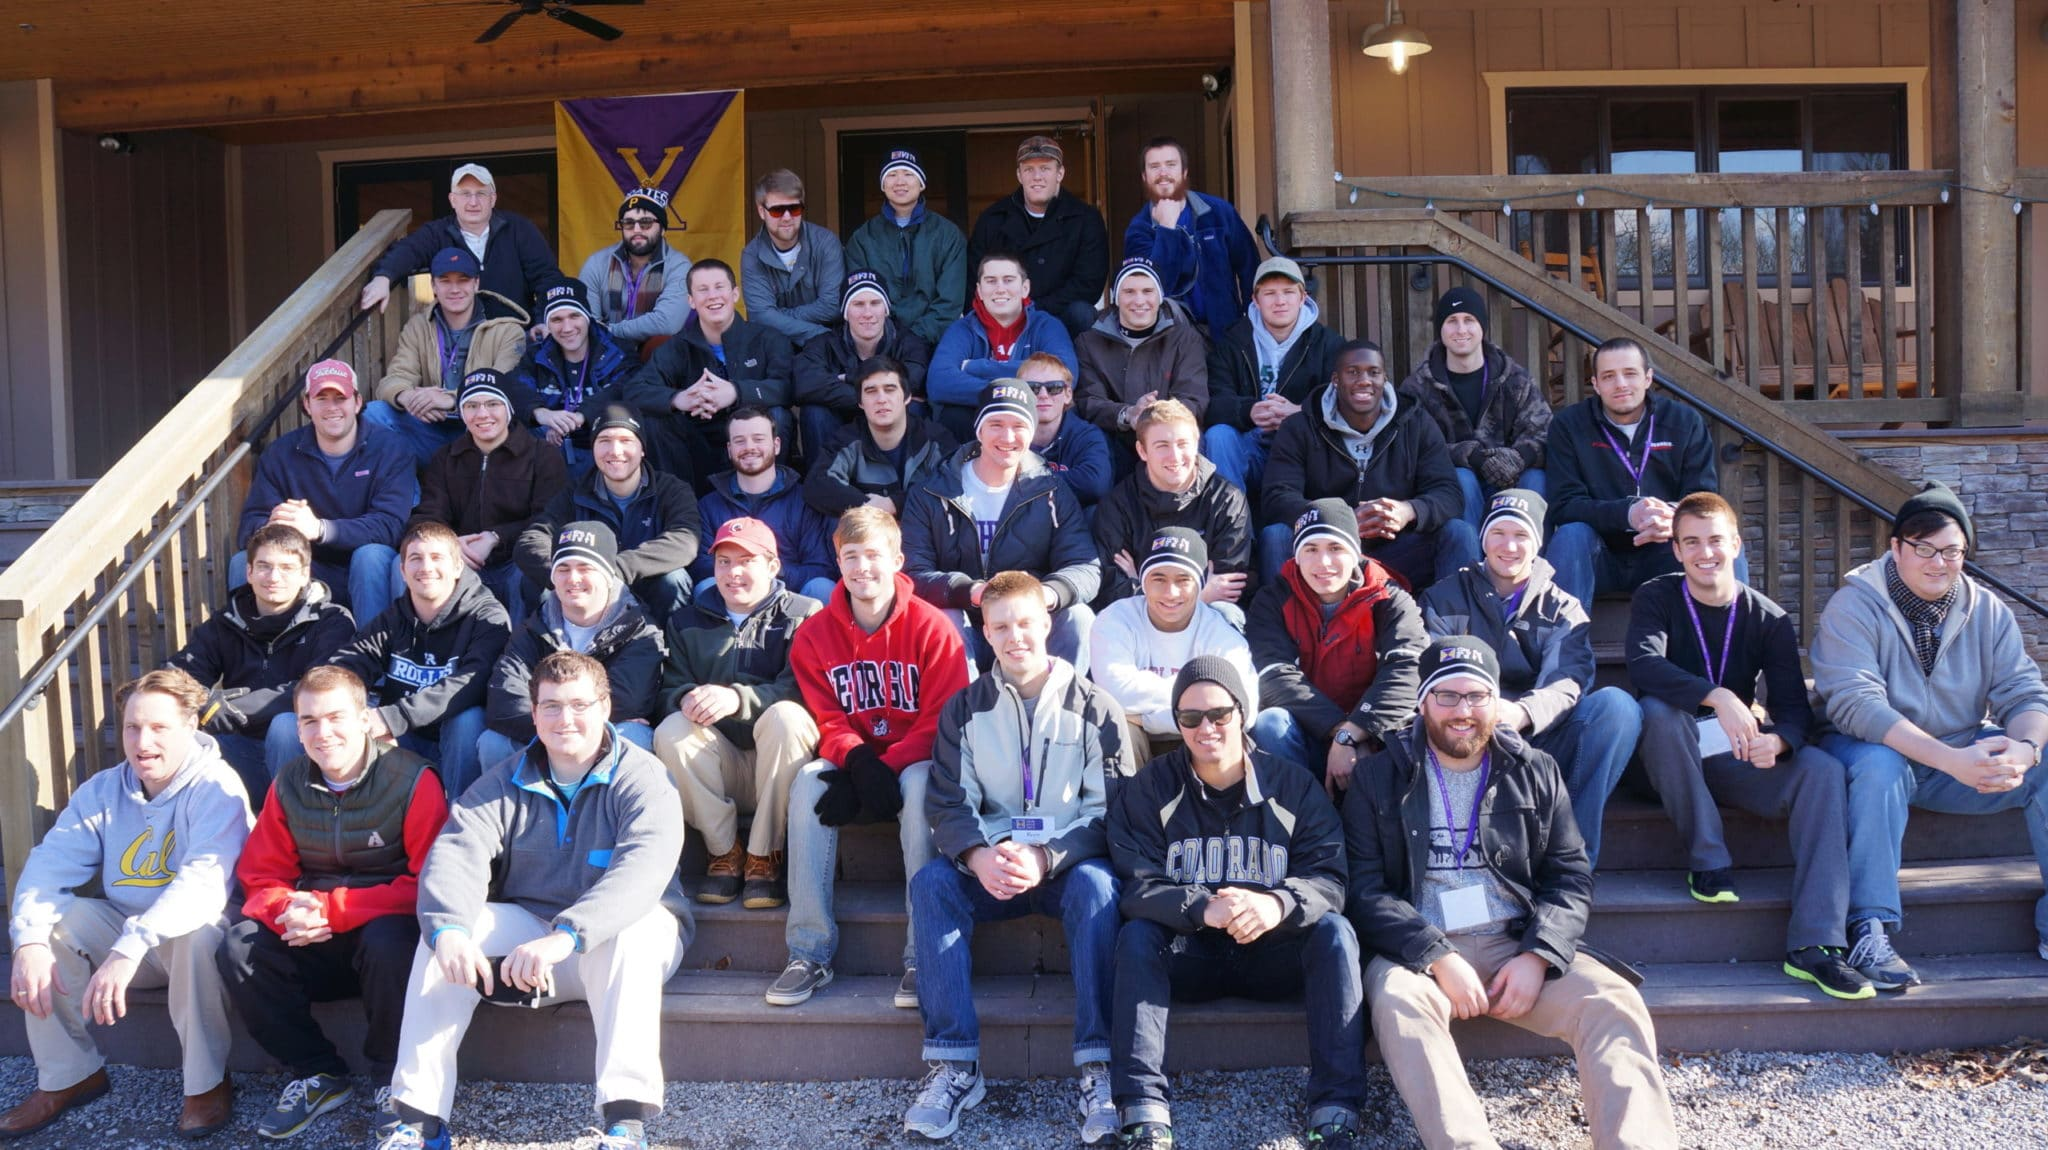 Fraternity sitting on steps posing for photo